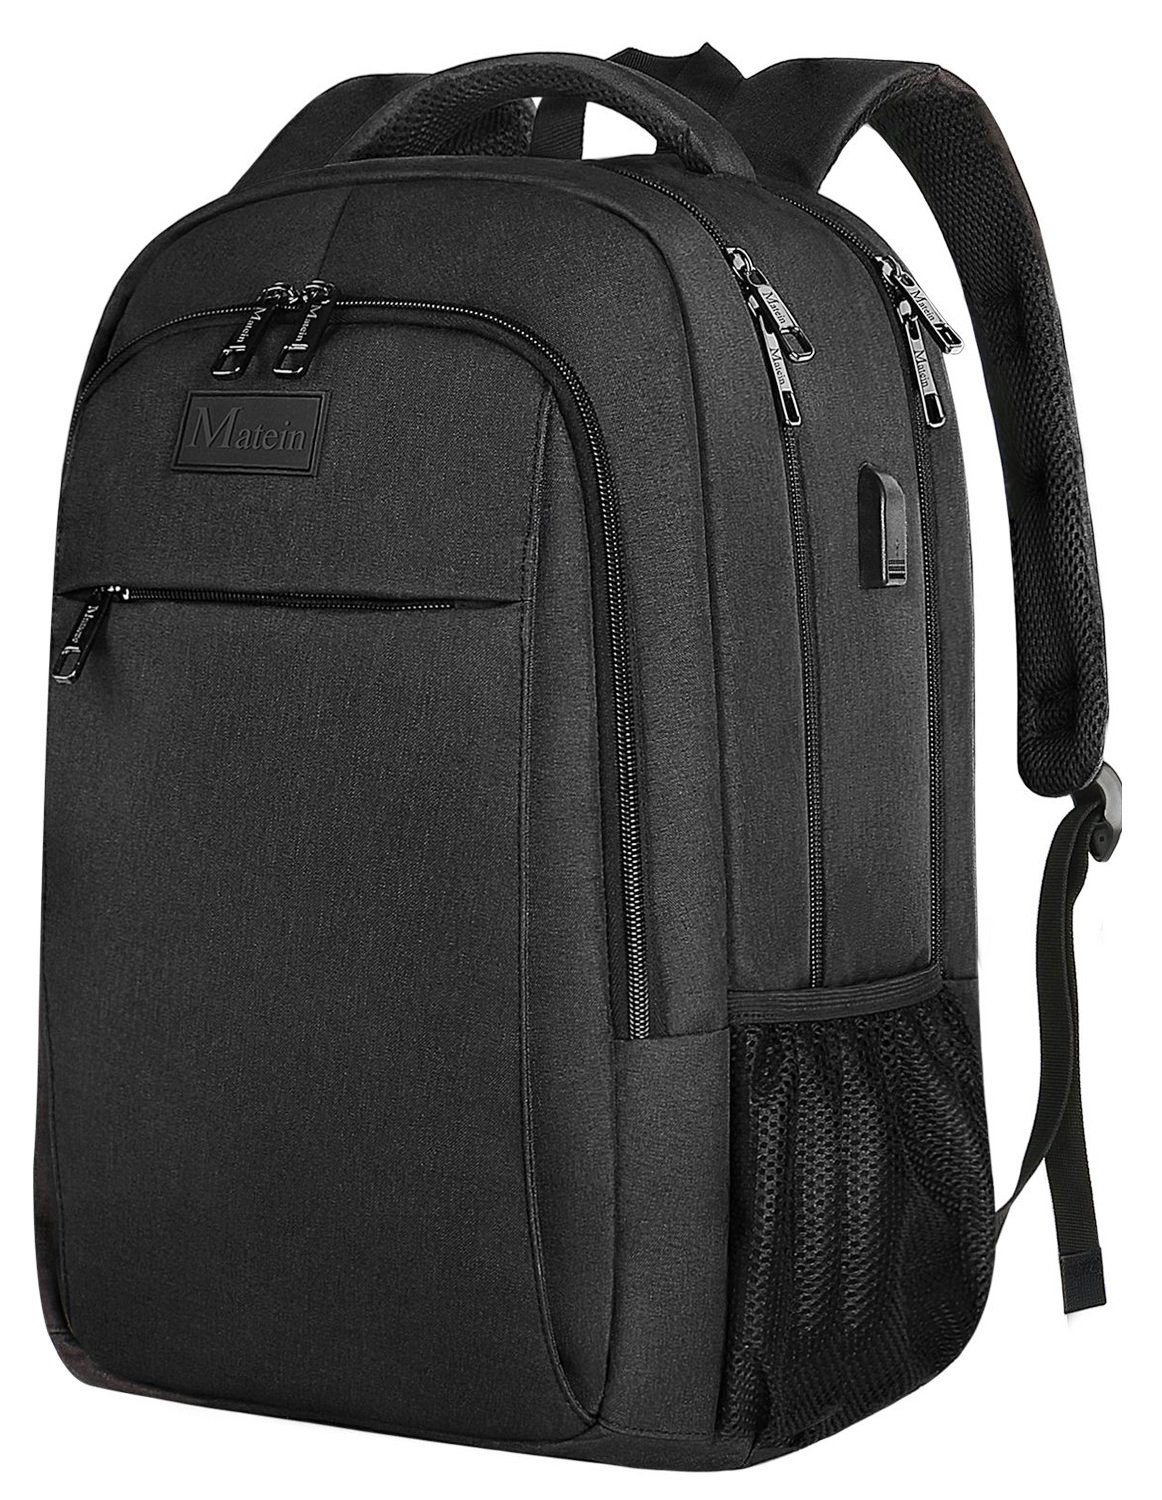 Business Travel Backpack, Matein Laptop Backpack with USB Charging Port for Men Womens Boys Girls, Anti-Theft Water Resistant College School BookBag Computer Backpack Fits 15.6 Inch Laptop & Notebook